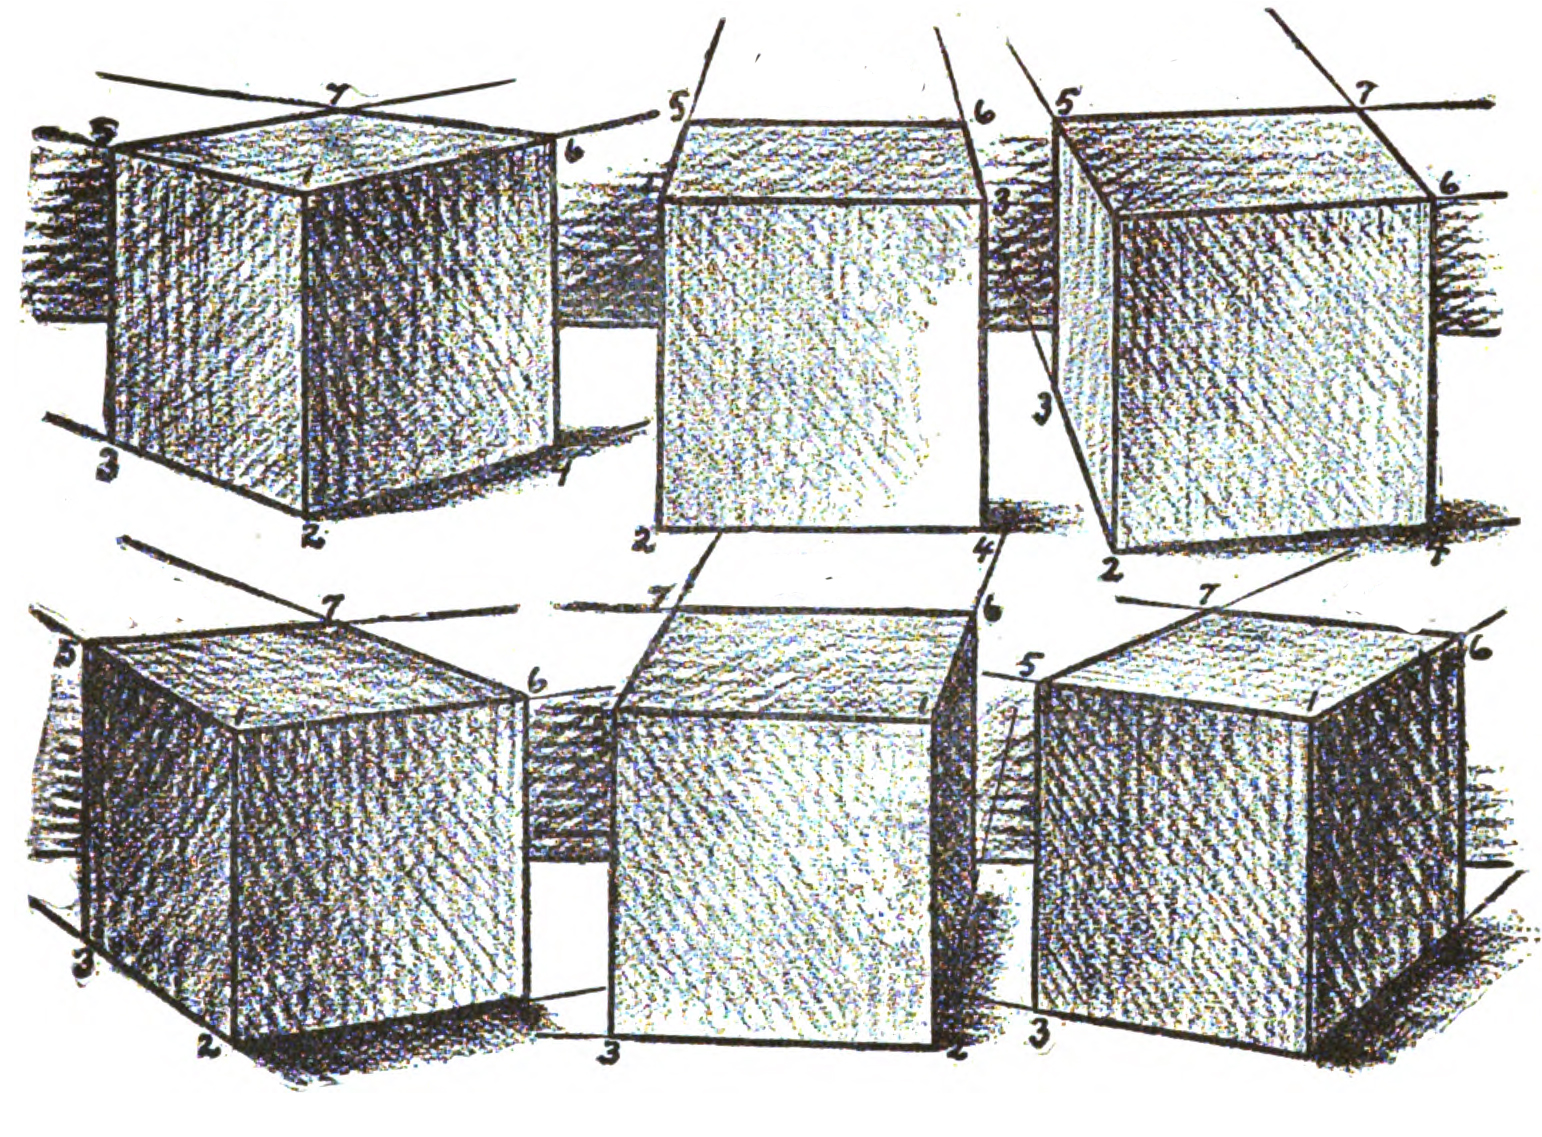 MORE EXAMPLES OF SHADING BOXES AND CUBES